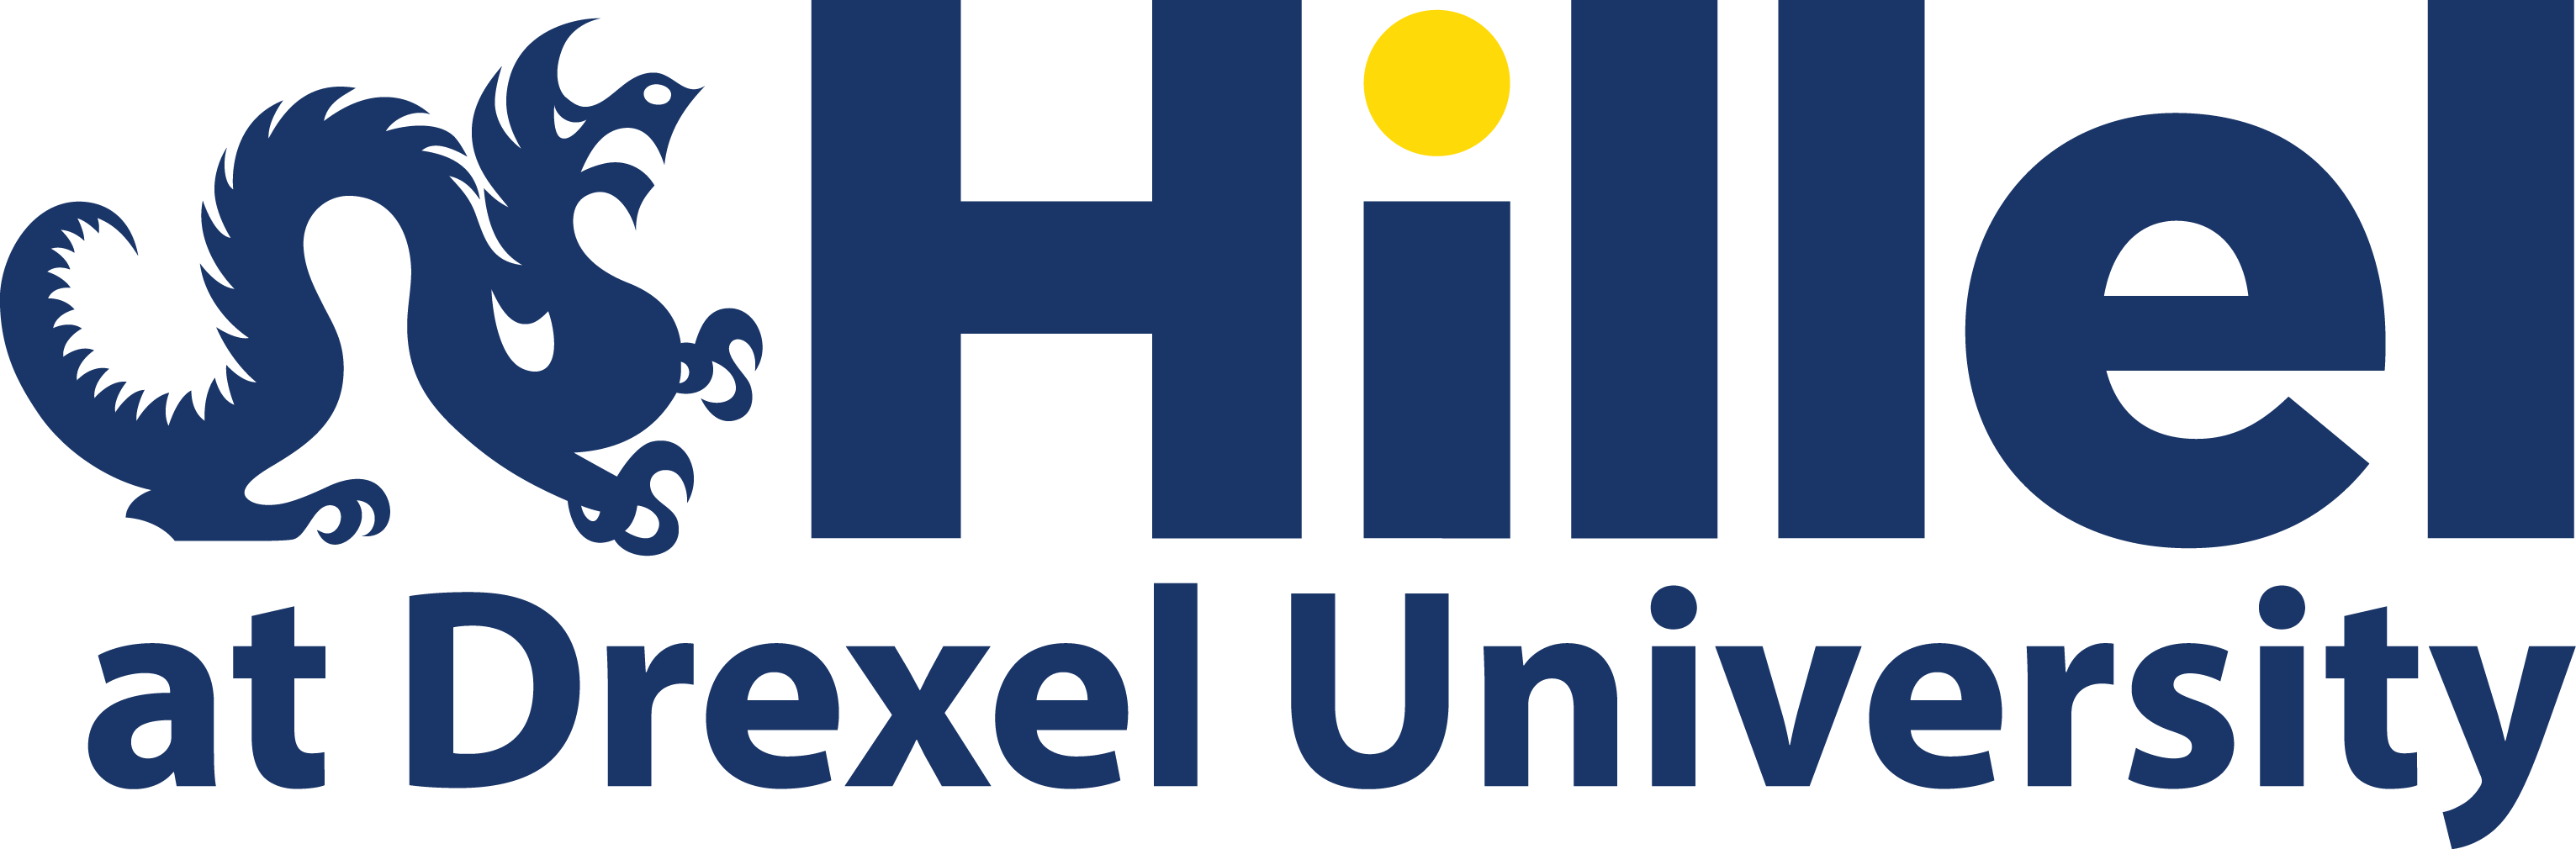 Hillel at Drexel University